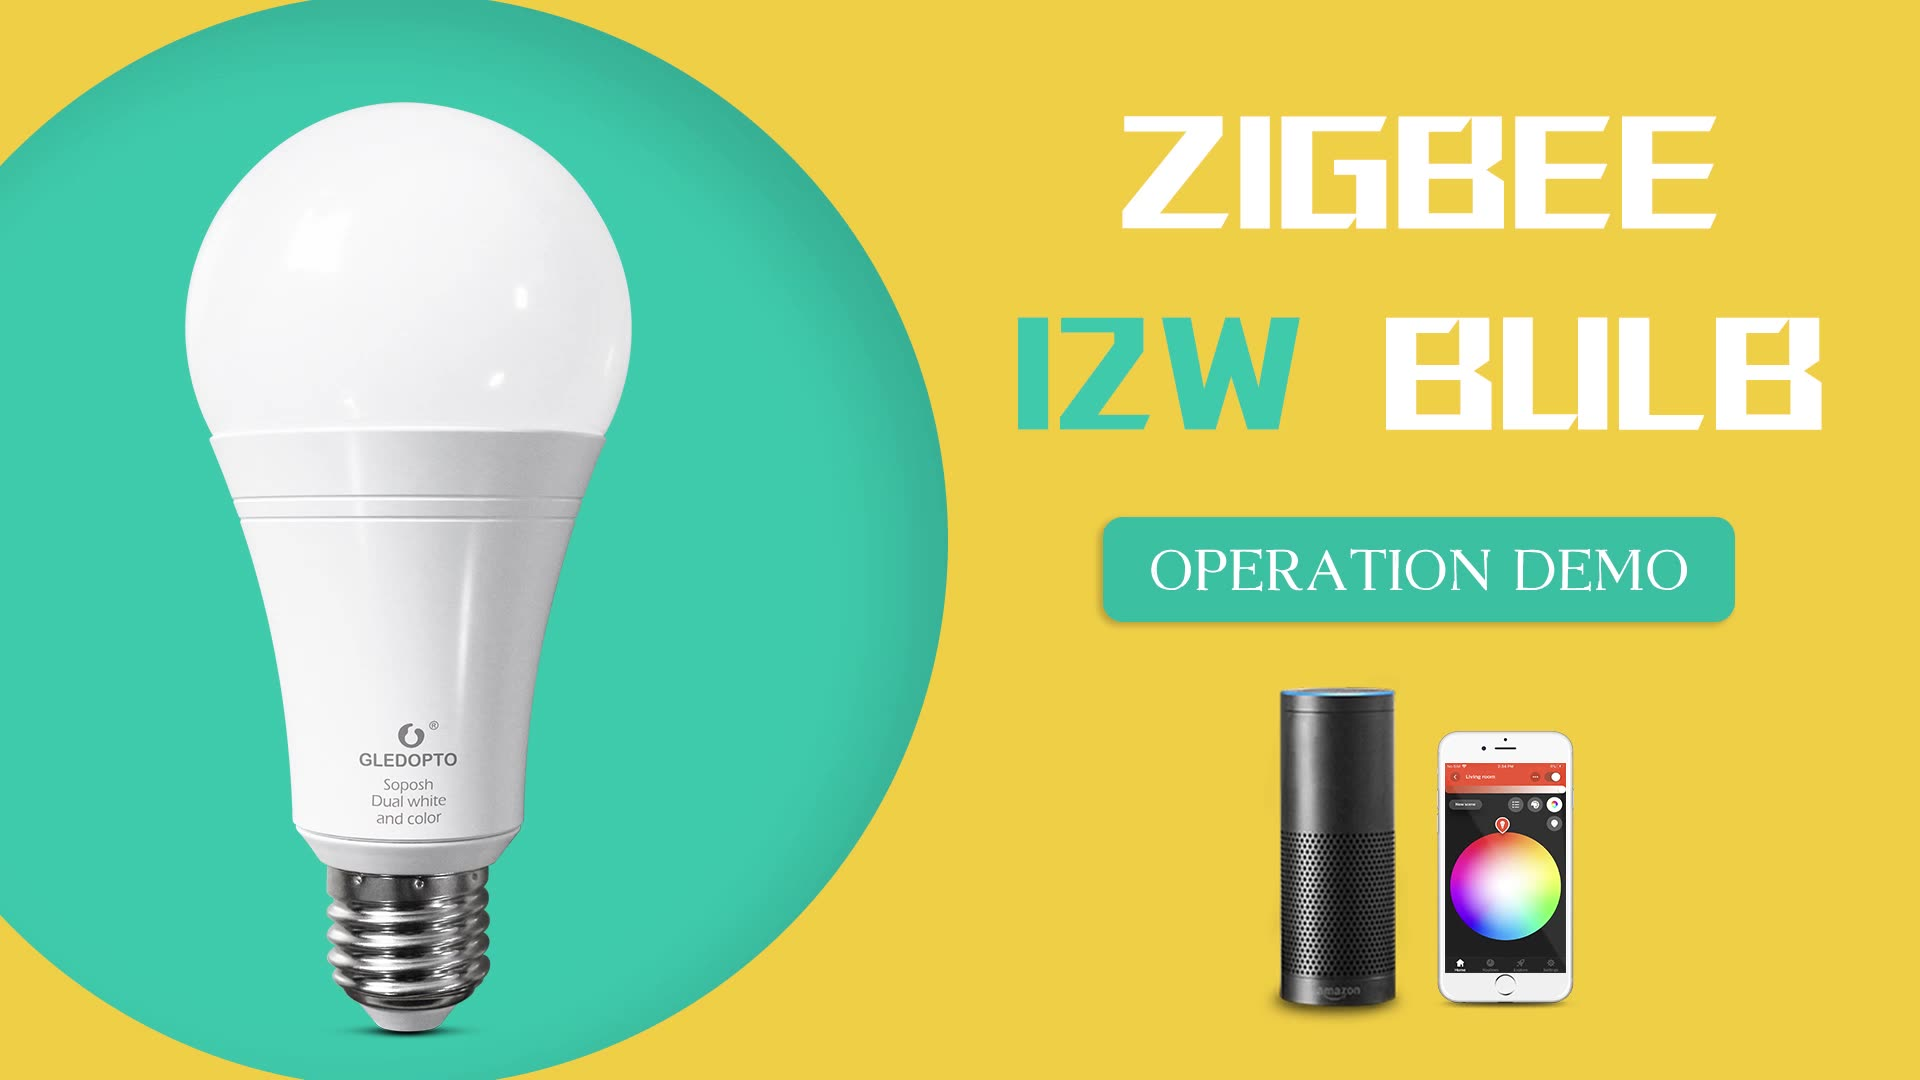 zigbee compatible Wireless lighting RGB CCT dimmable bulbs for home or commercial building